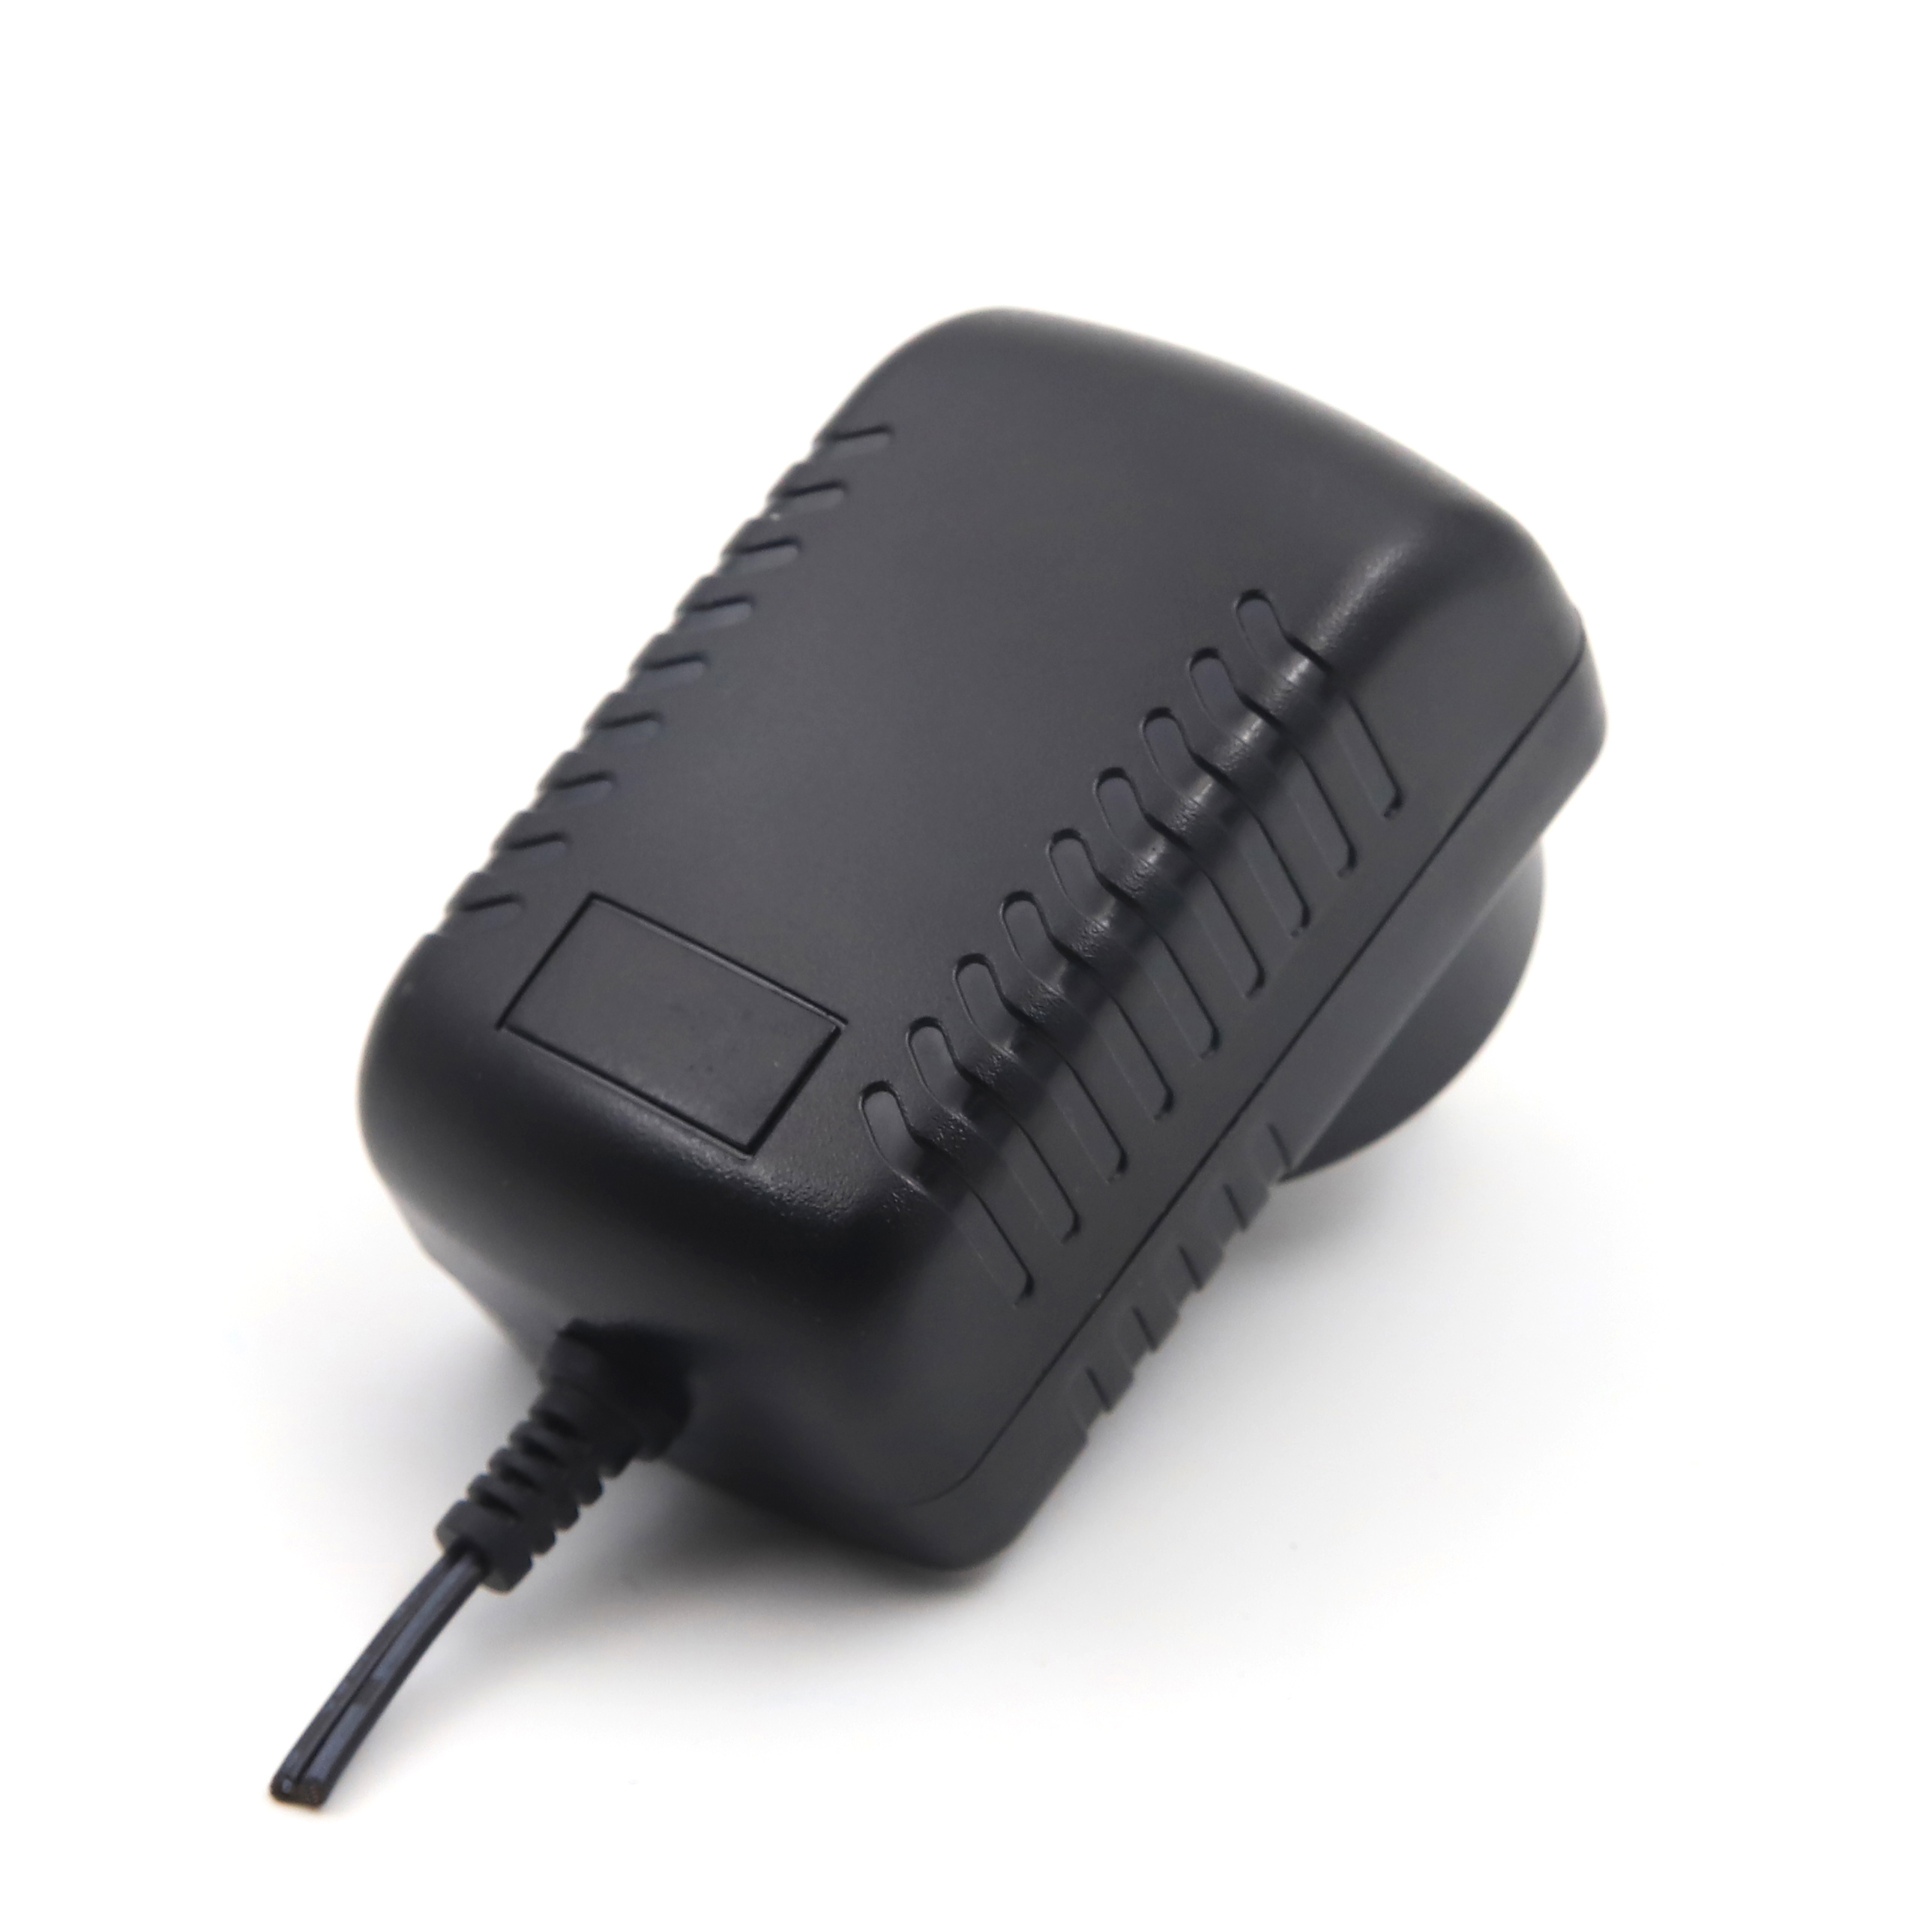 Outdoor Fan Charger 20V 1.2A